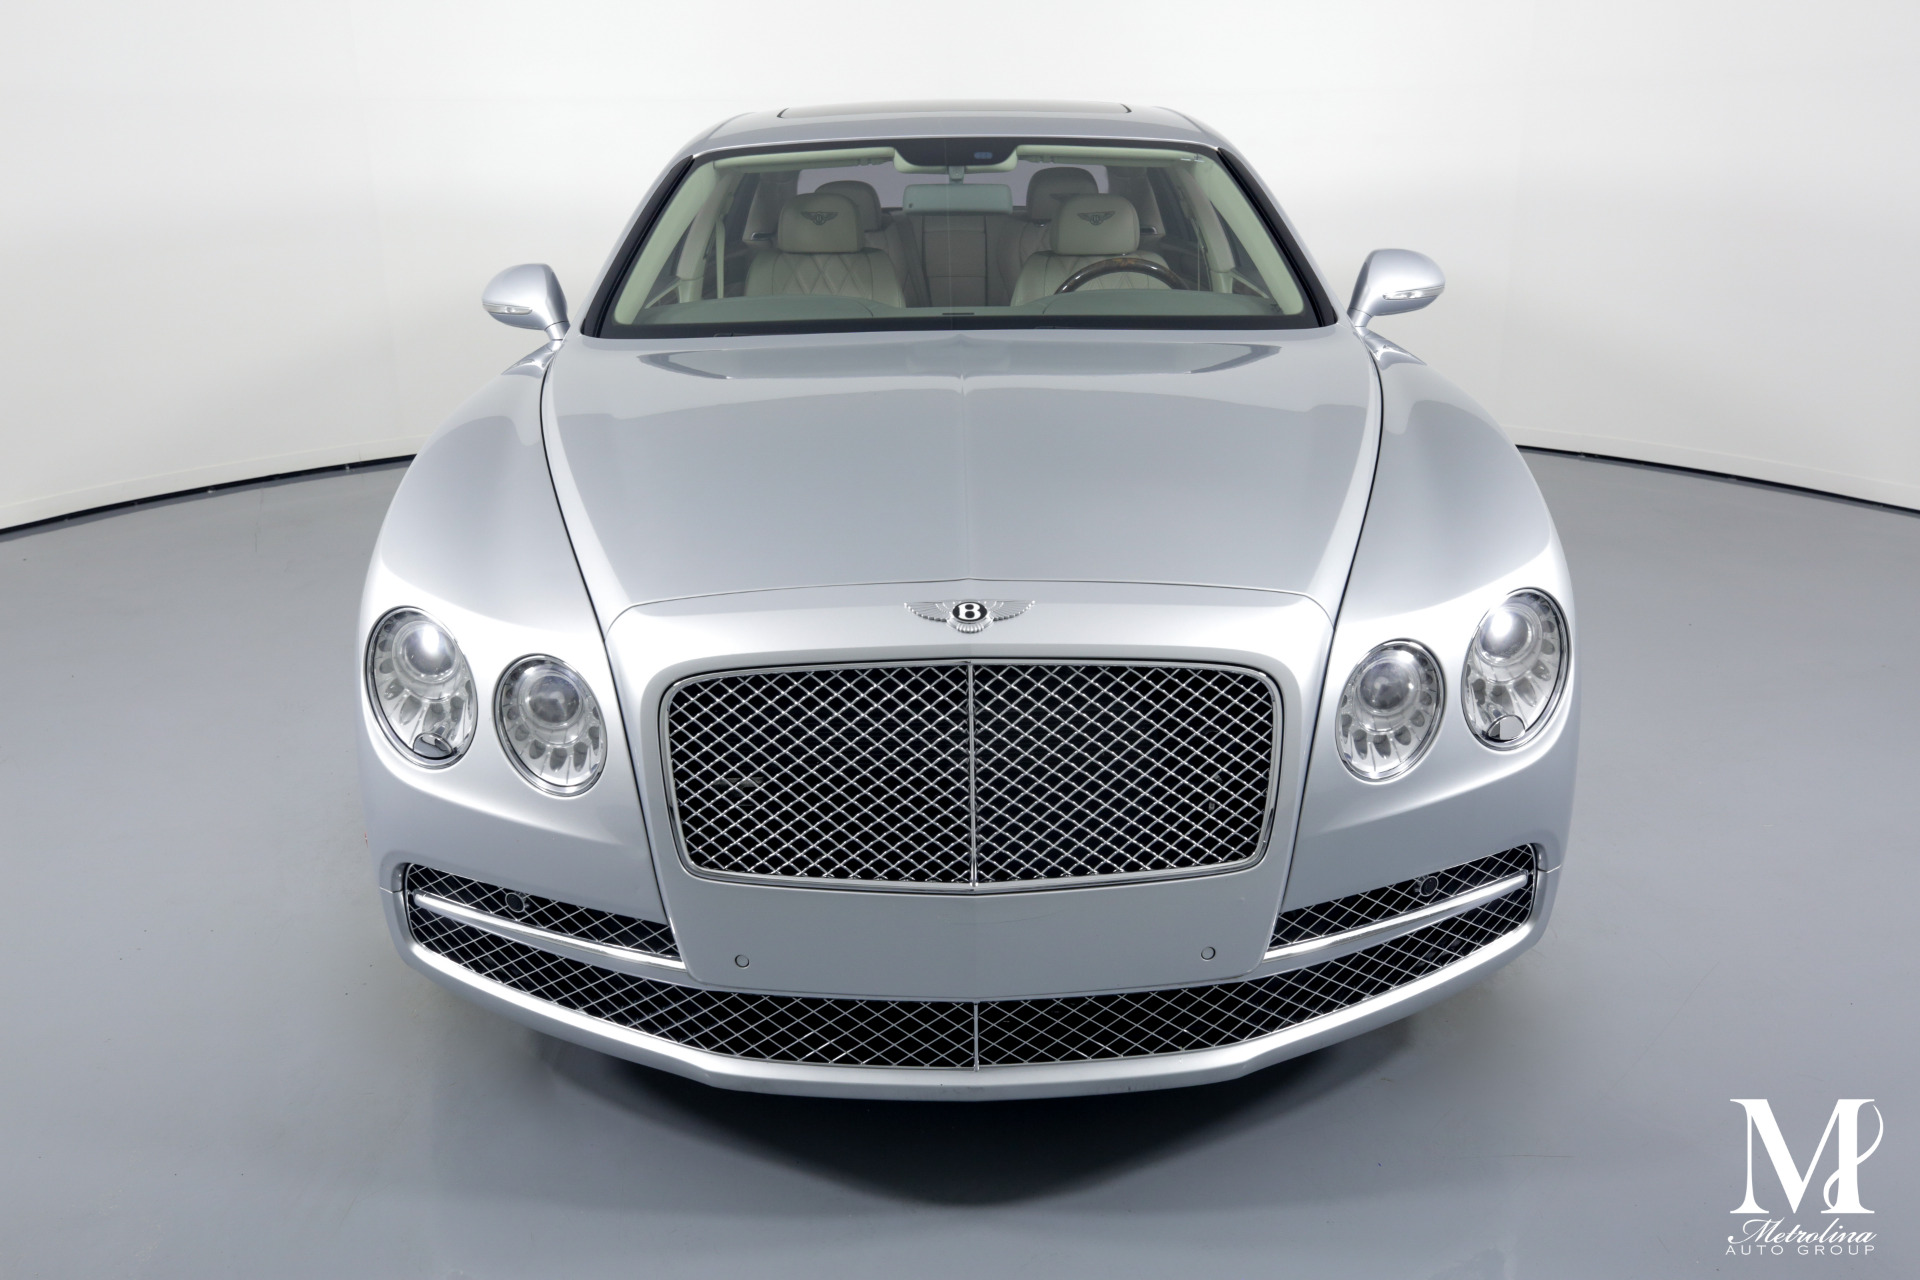 Used 2014 Bentley Flying Spur for sale $99,996 at Metrolina Auto Group in Charlotte NC 28217 - 3